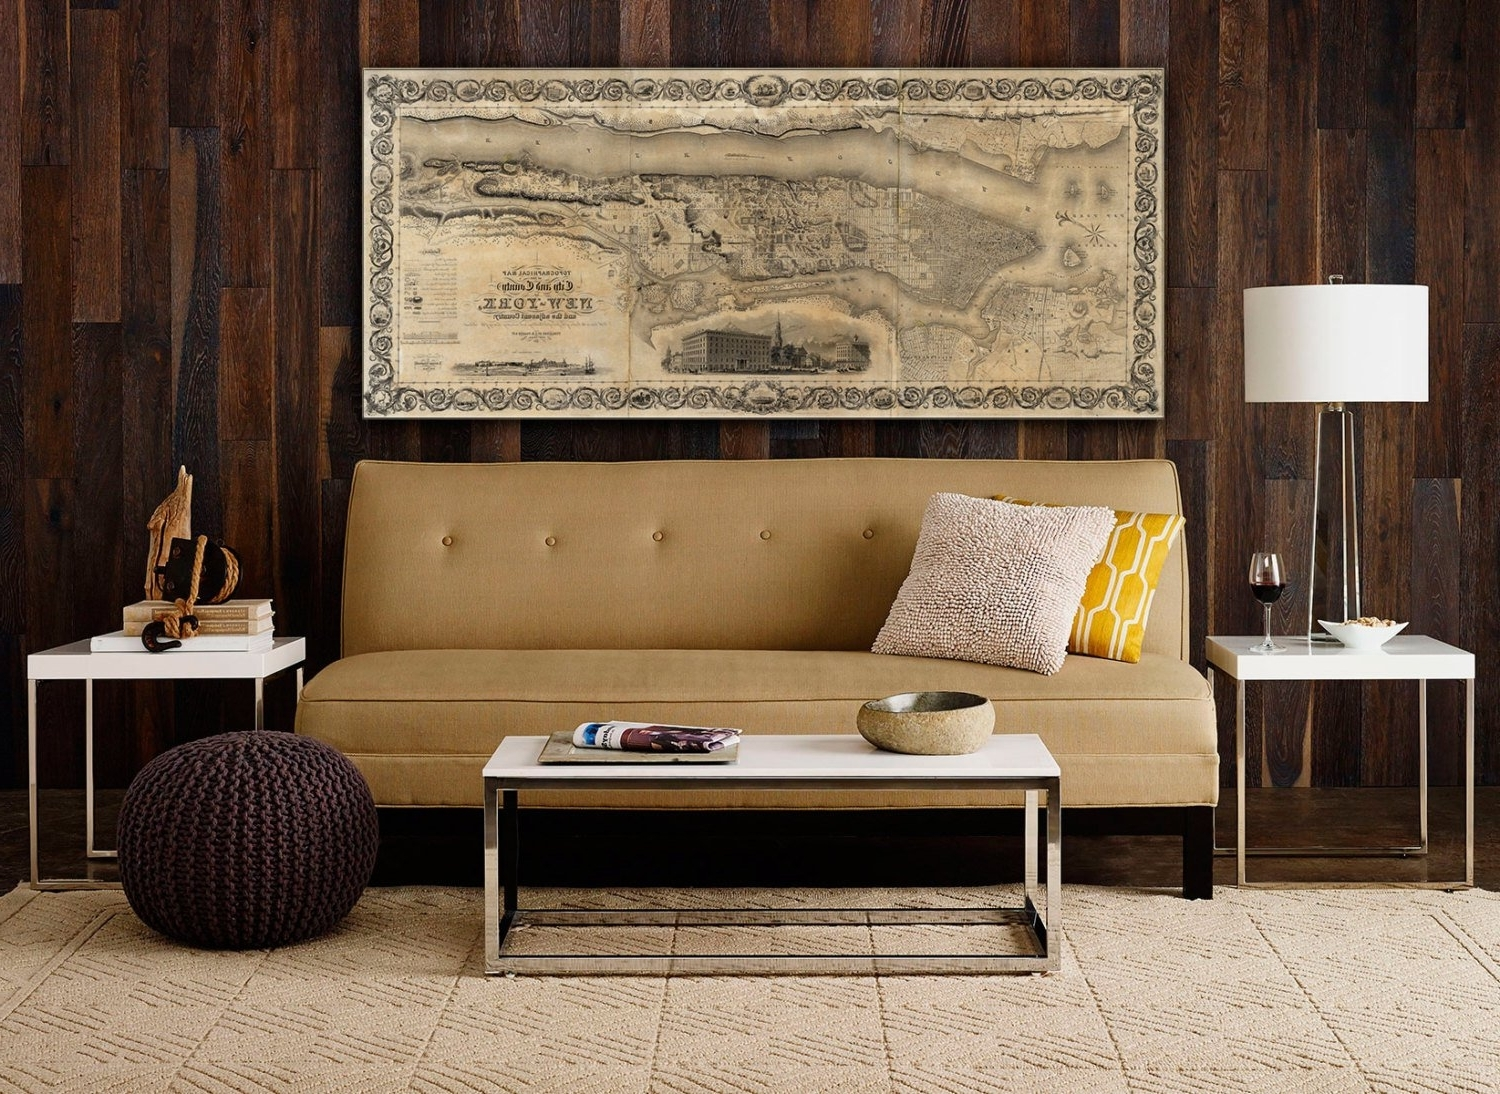 New York City Map Wall Art With Regard To Famous Giant Vintage New York City Map Old Antique Restoration Decor Style (View 13 of 15)